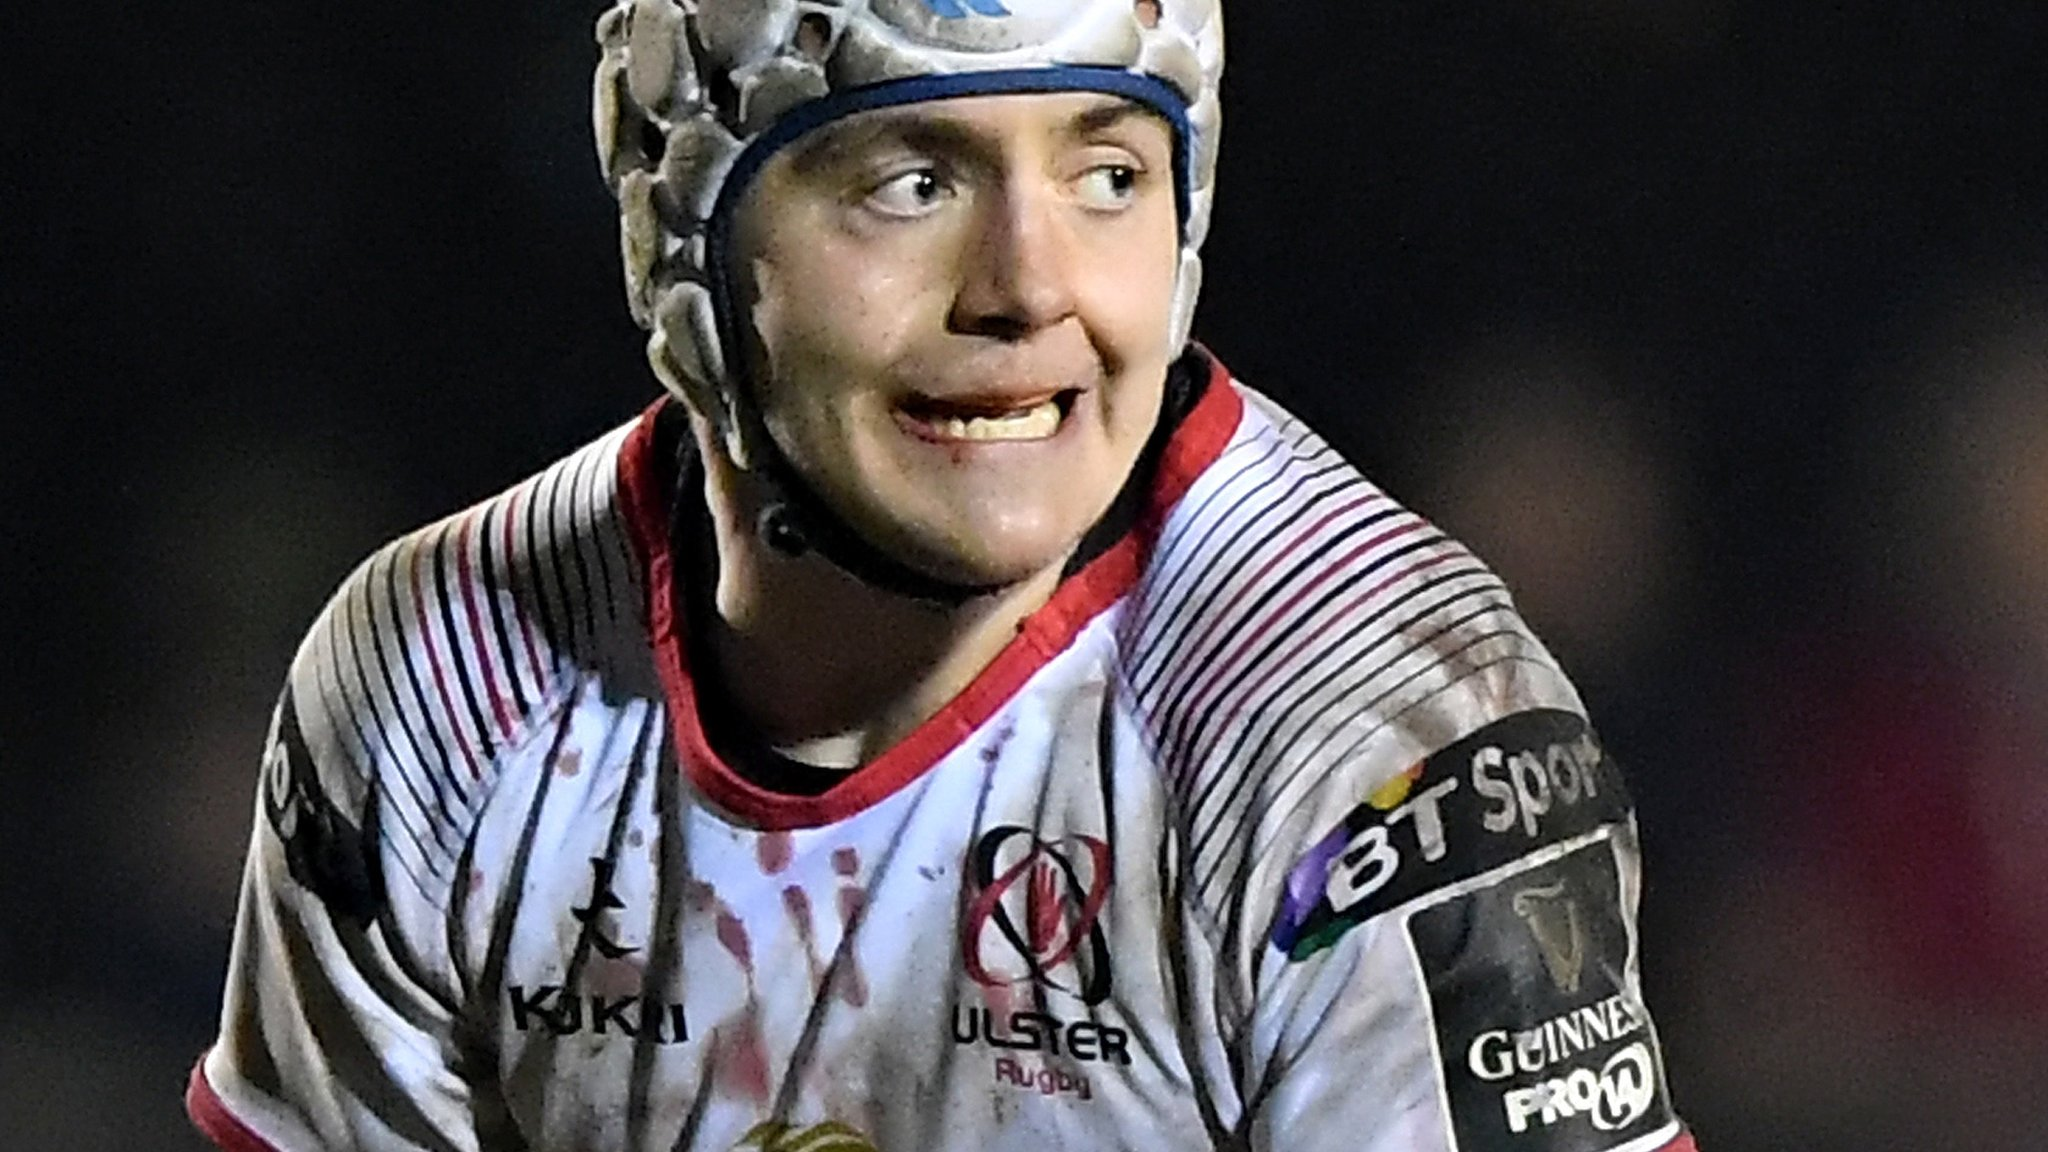 Ulster Rugby: Hume, Lowry and O'Sullivan sign first senior contracts